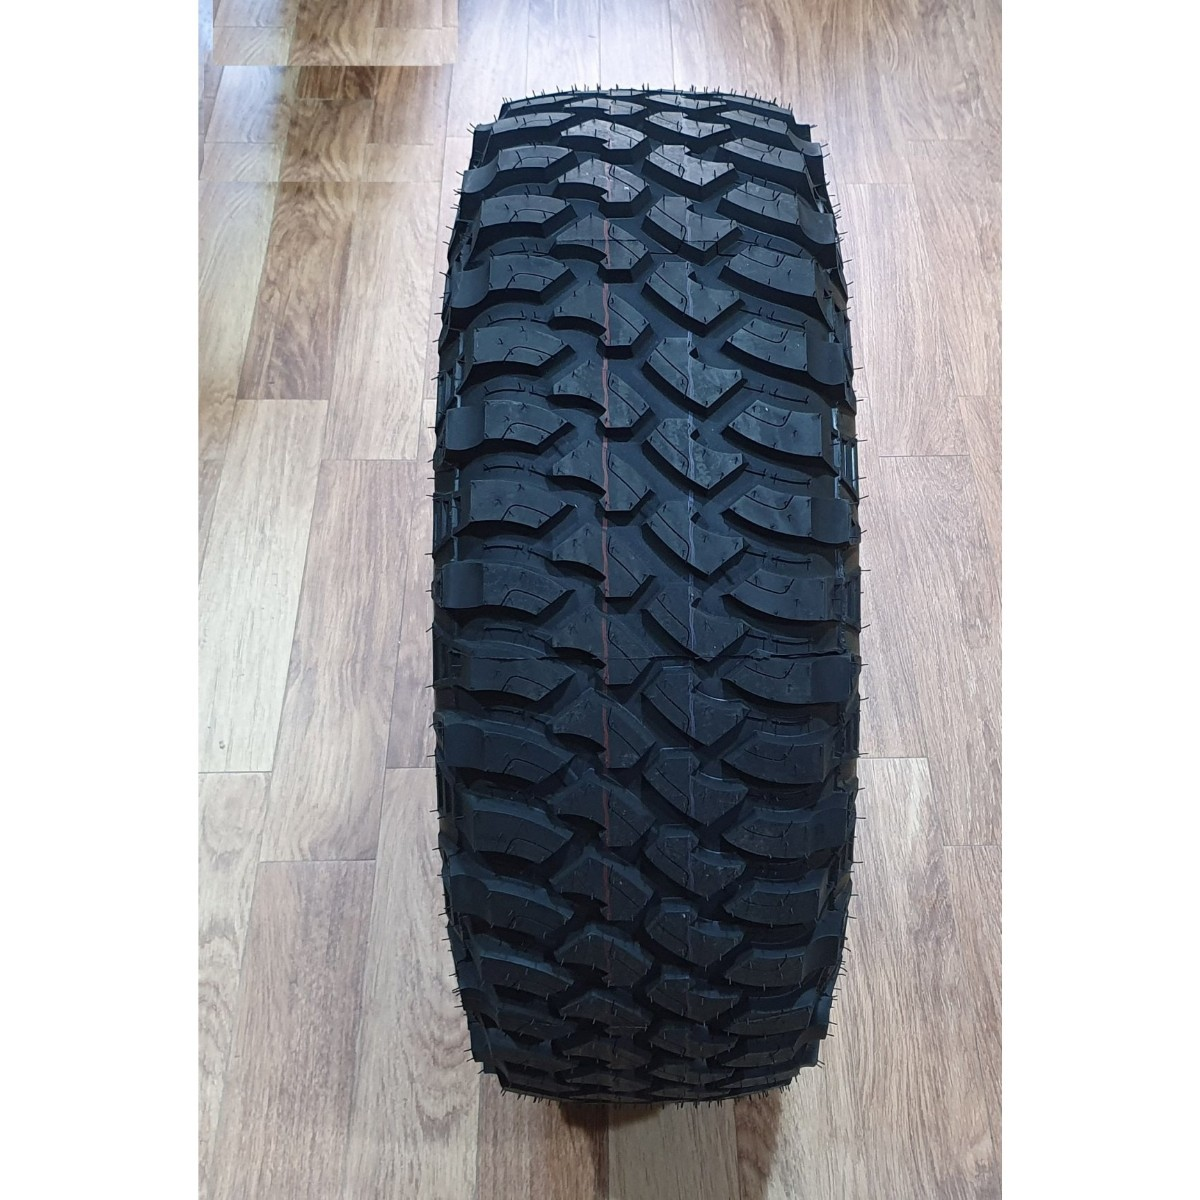 Bearway 285/75 R16 MT 126/123Q Lastik |